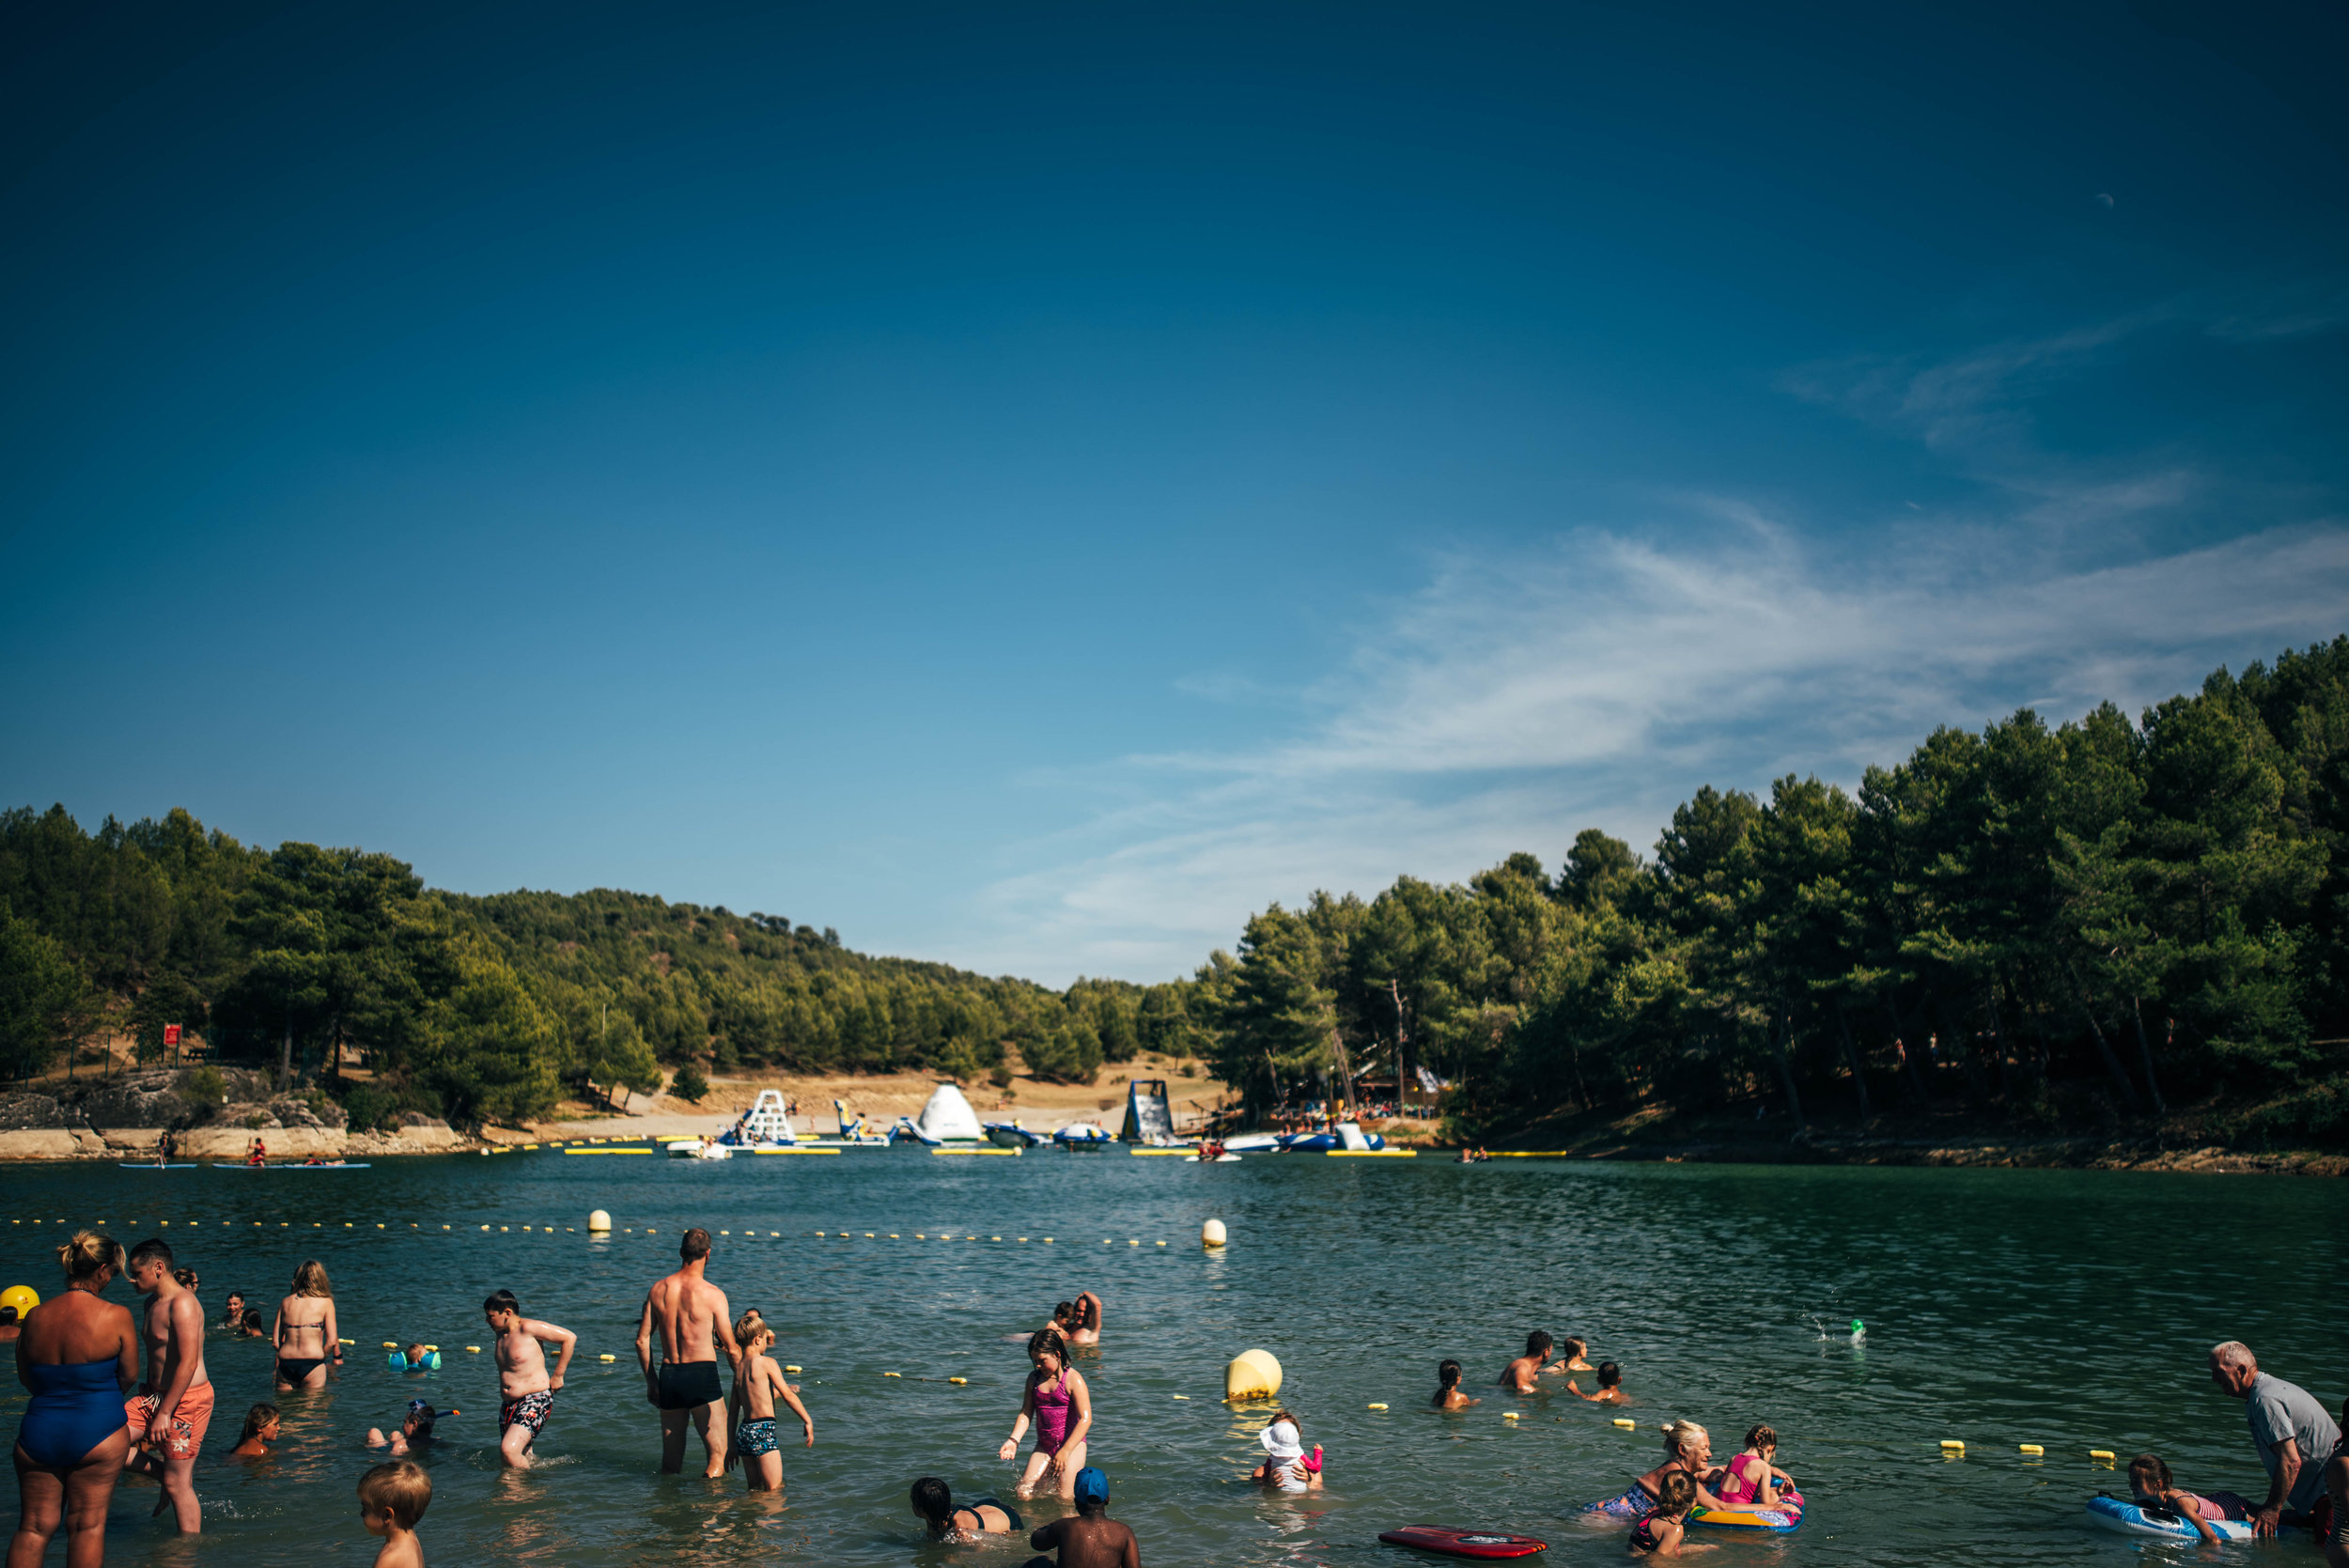 Families swimming in Lake France Essex UK Documentary Photographer